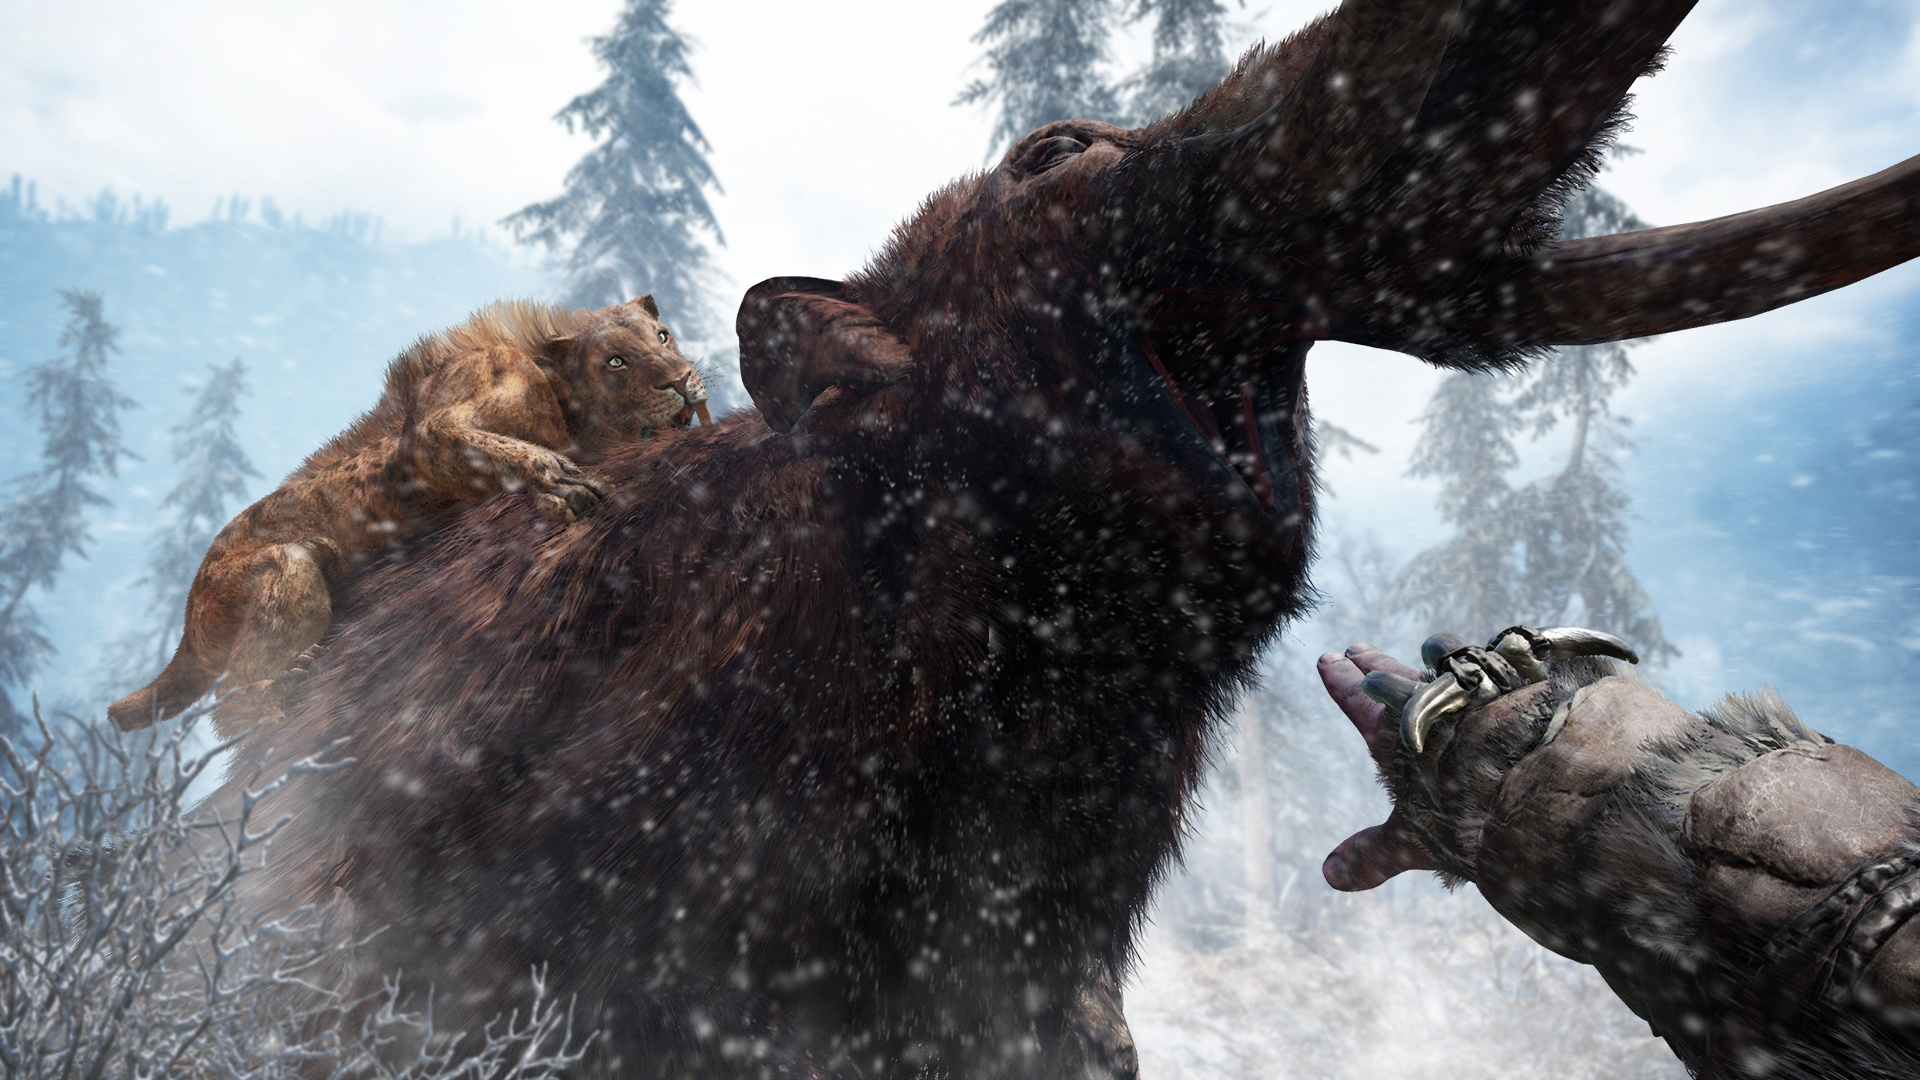 Far Cry Primal Wallpaper: Far Cry Primal HD Wallpapers, Pictures, Images